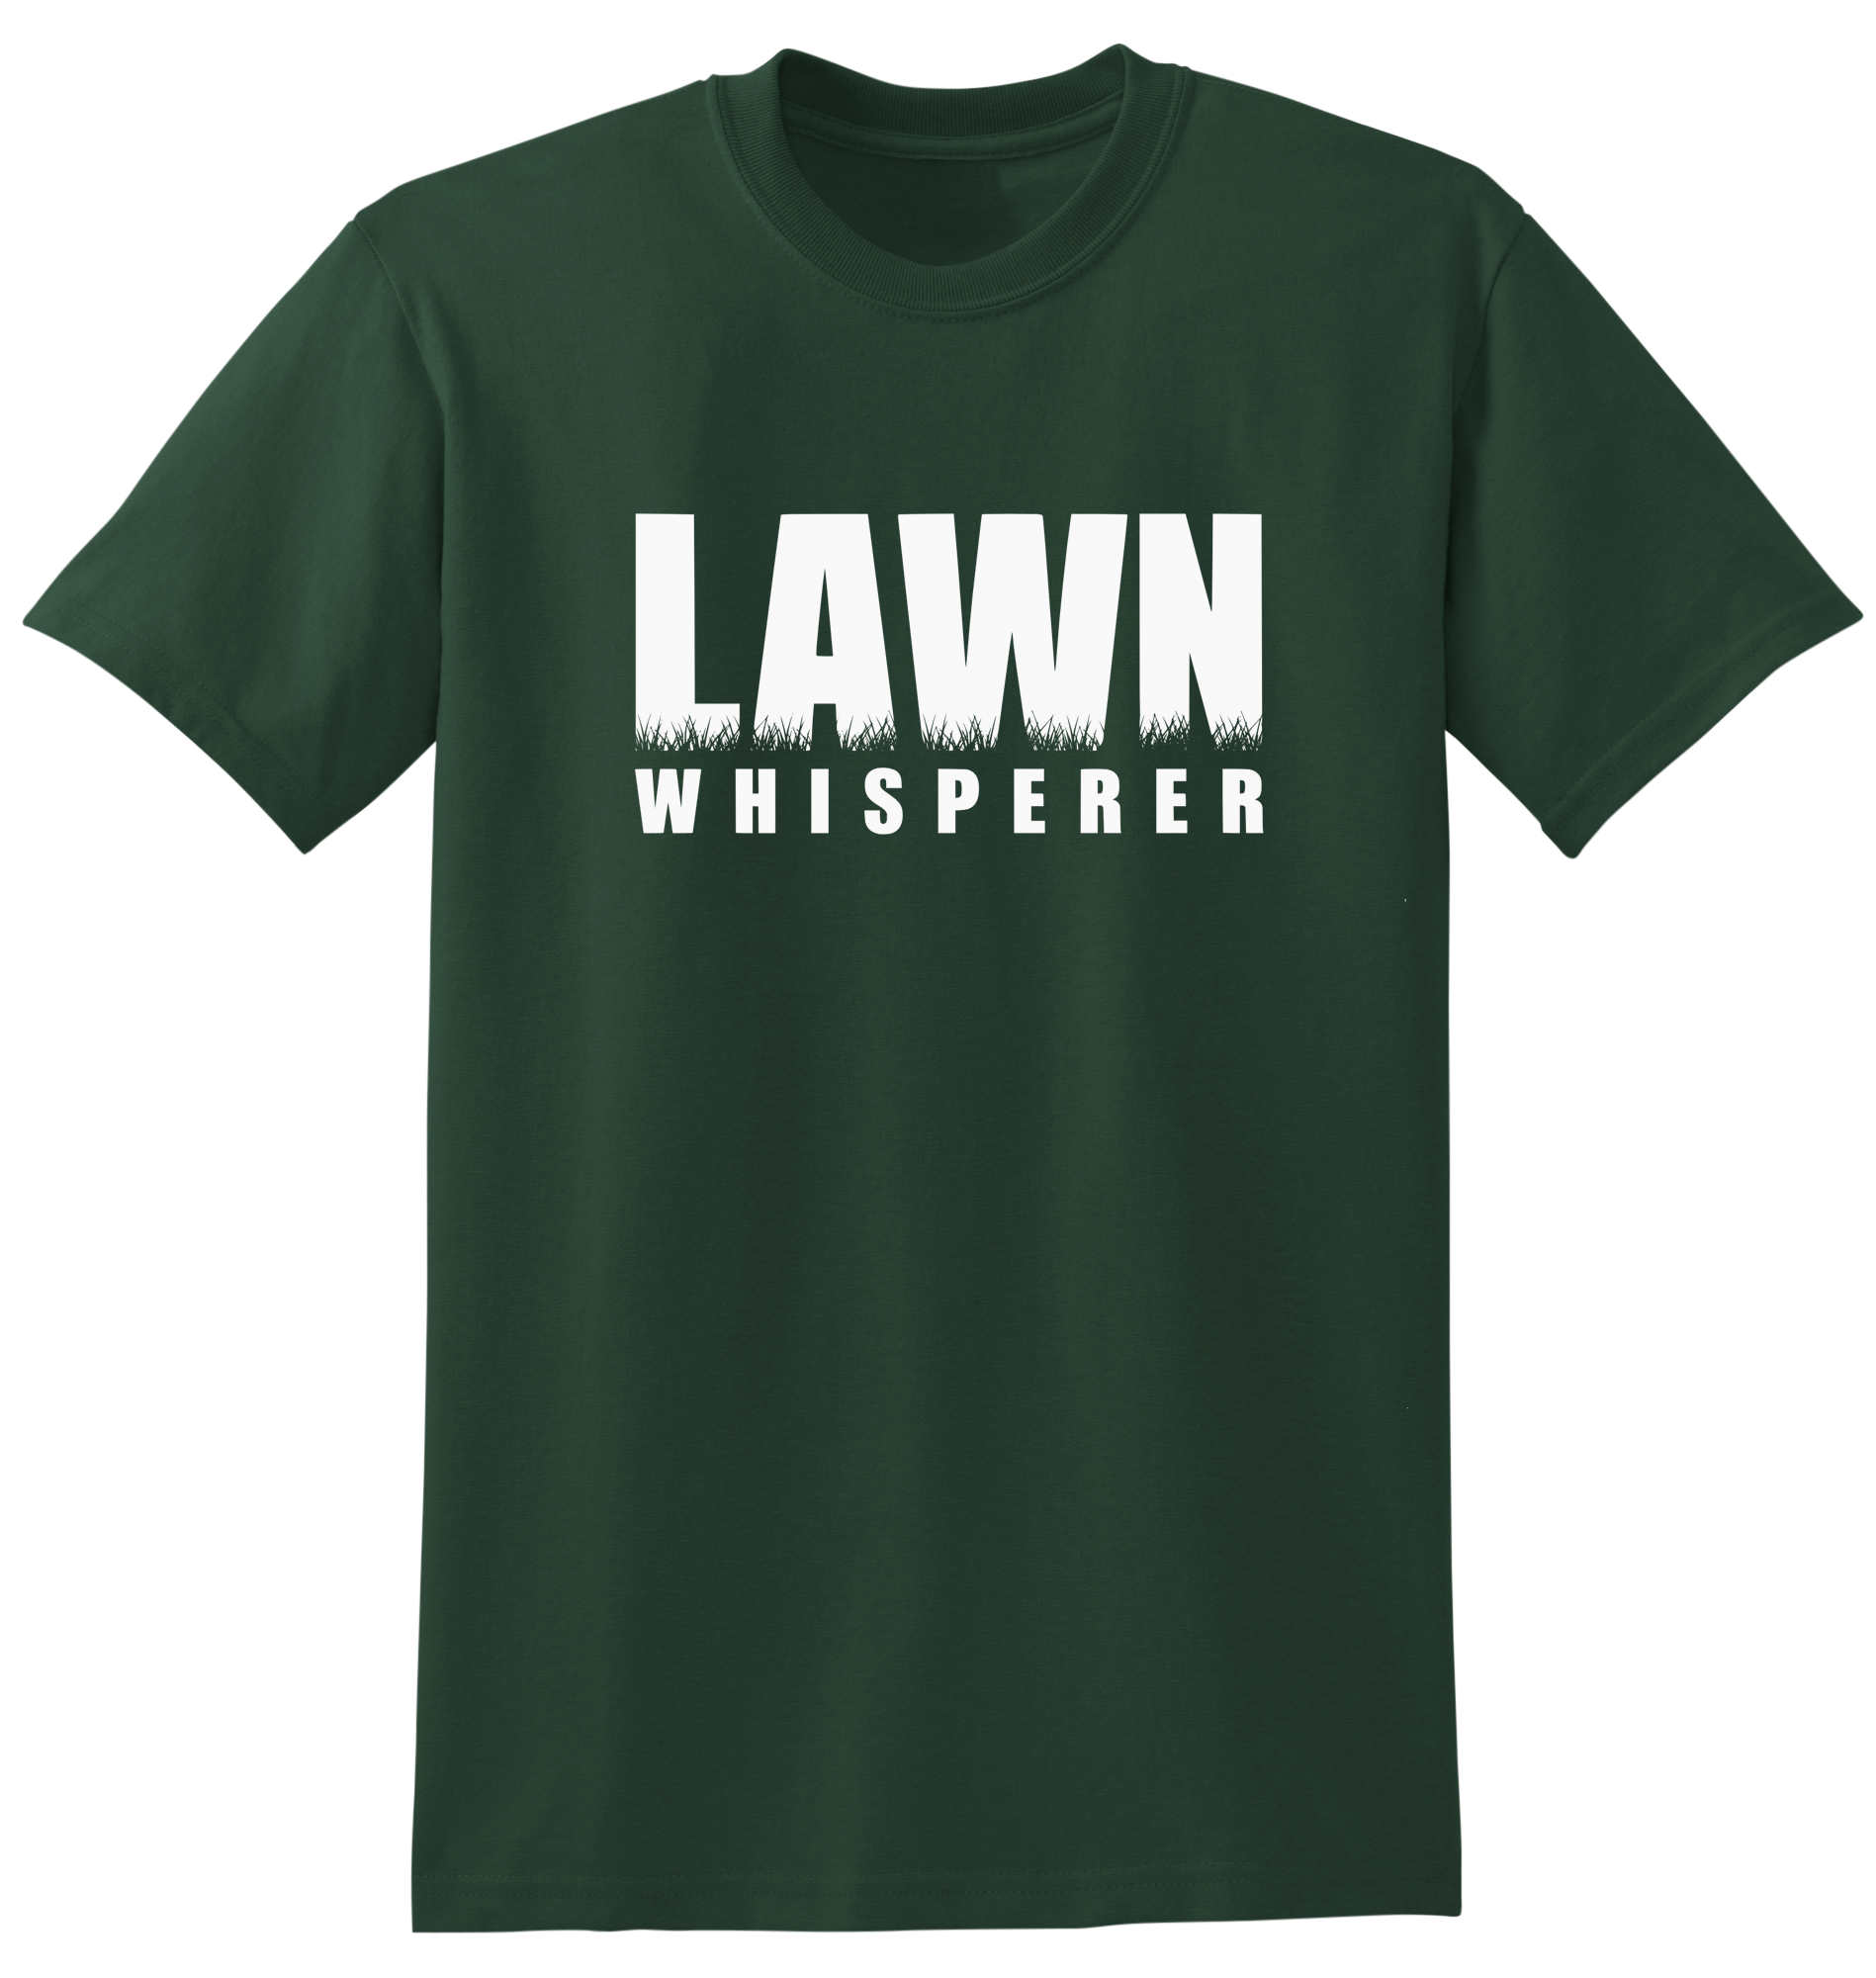 Dad shirt png. Lawn whisperer t care